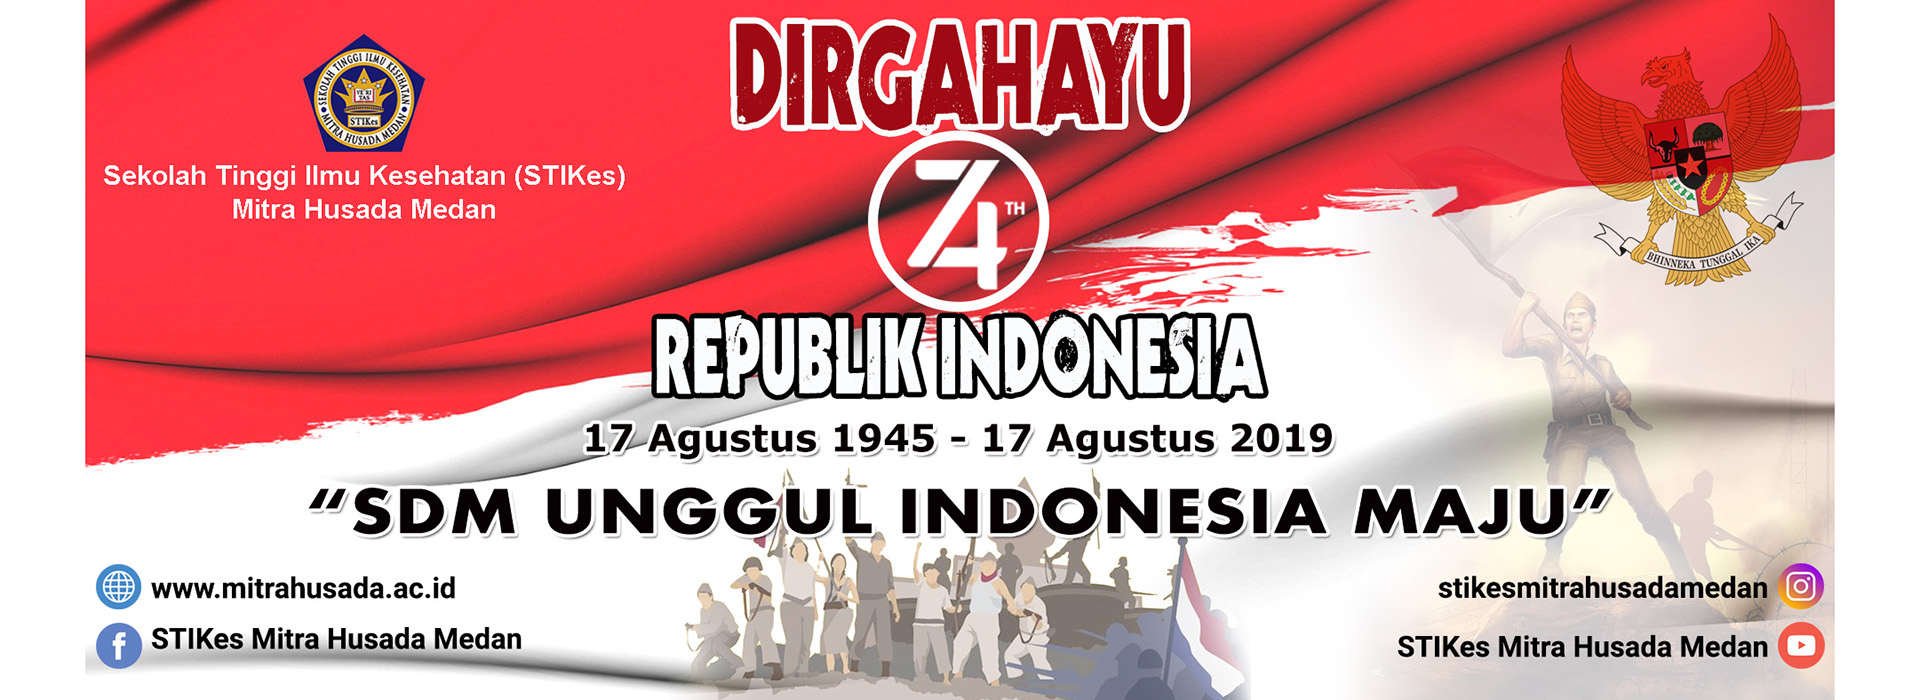 DIRGAHAYU REPUBLIK INDONESIA KE 74